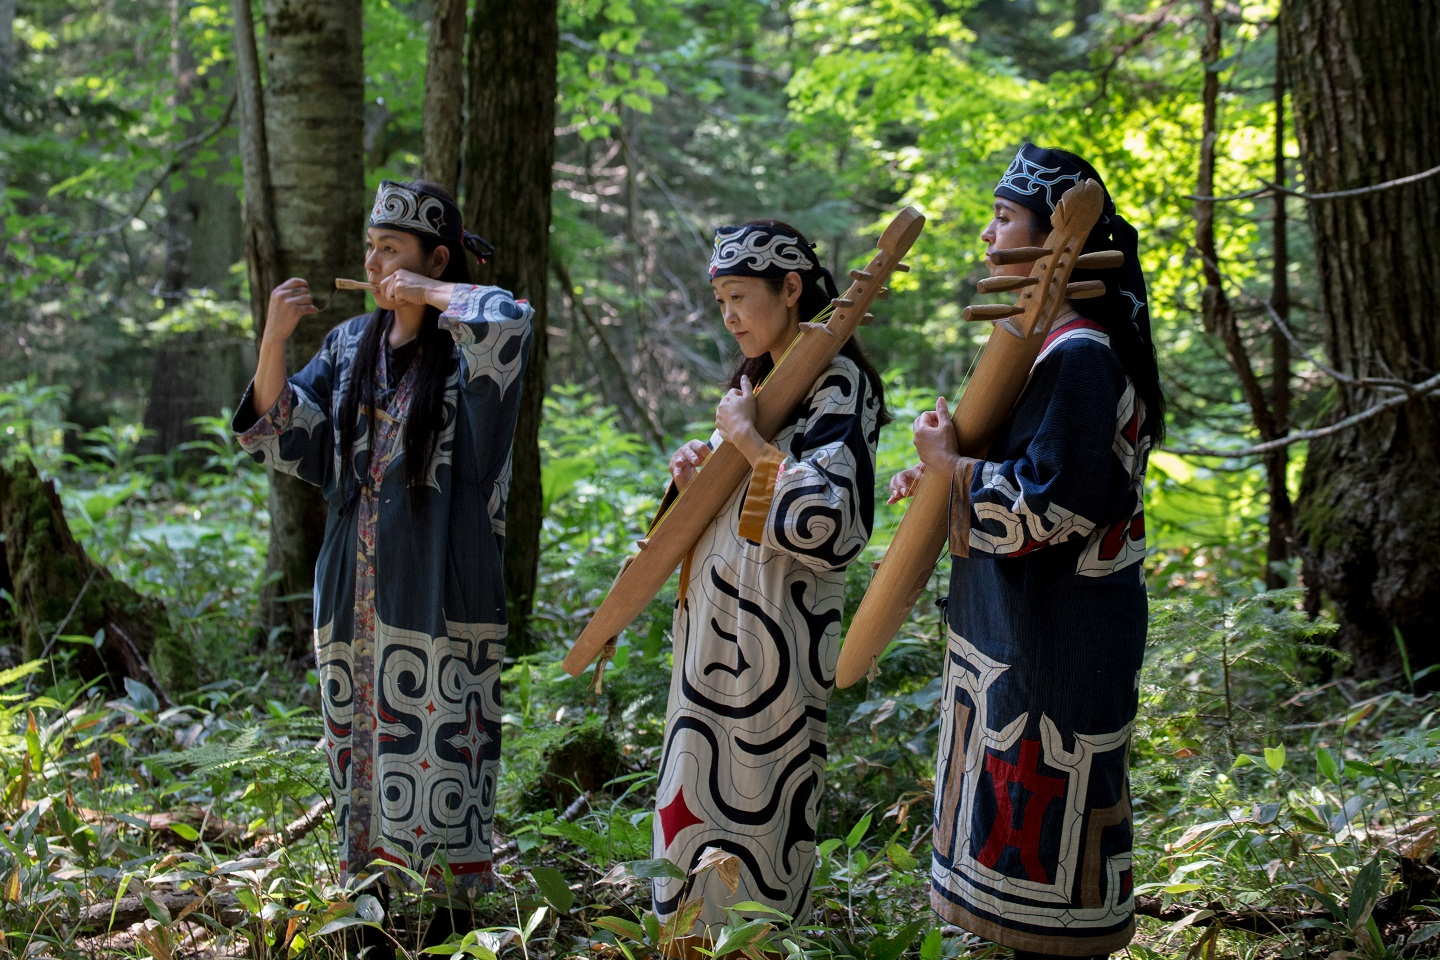 Quick Ainu language lesson